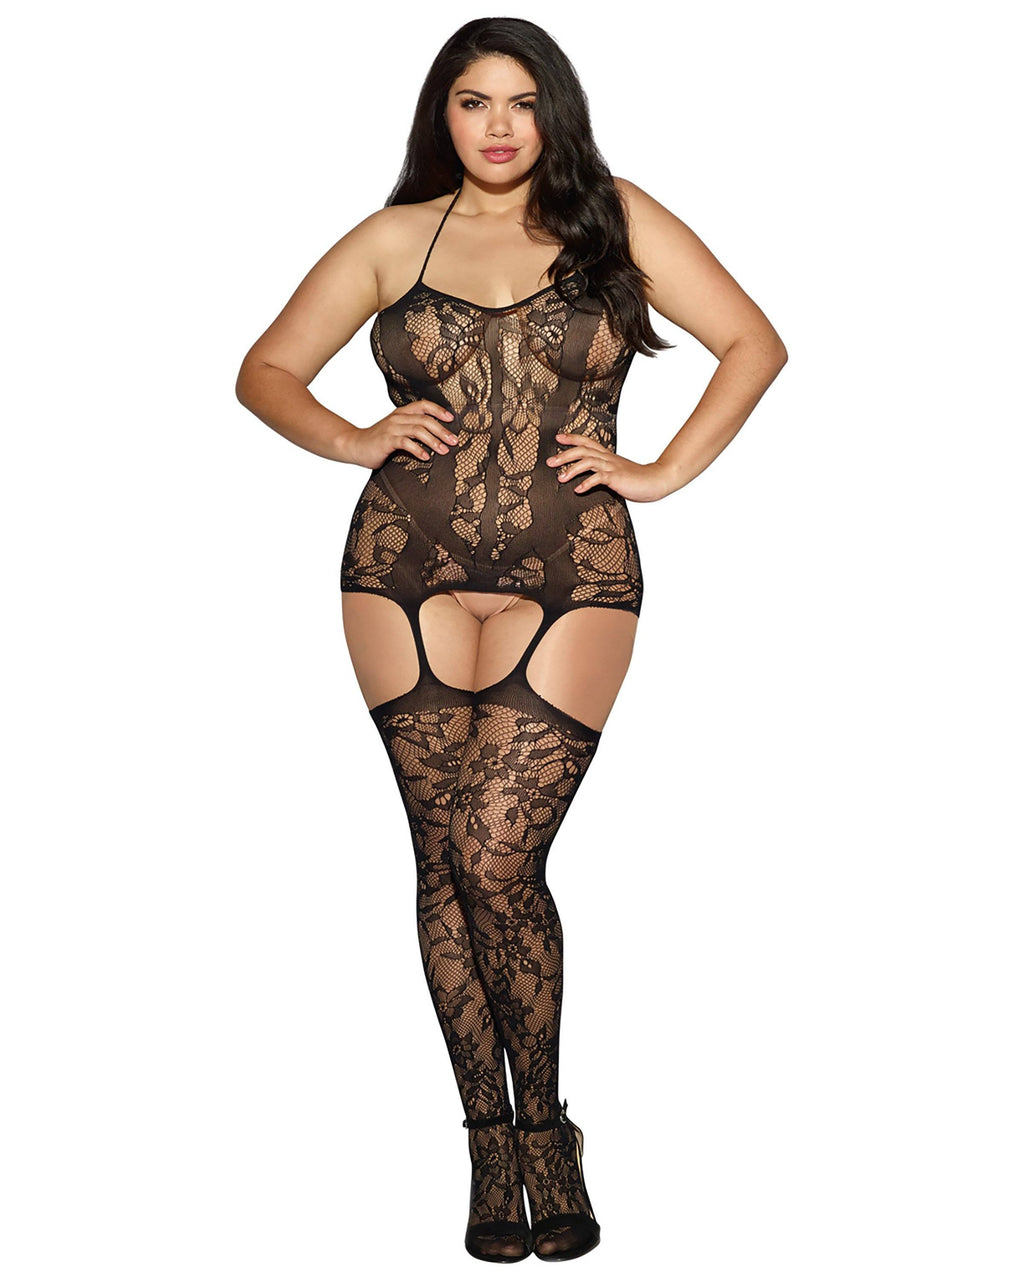 Plus Size Triniad Gartered Bodystocking Bodystocking Dreamgirl International